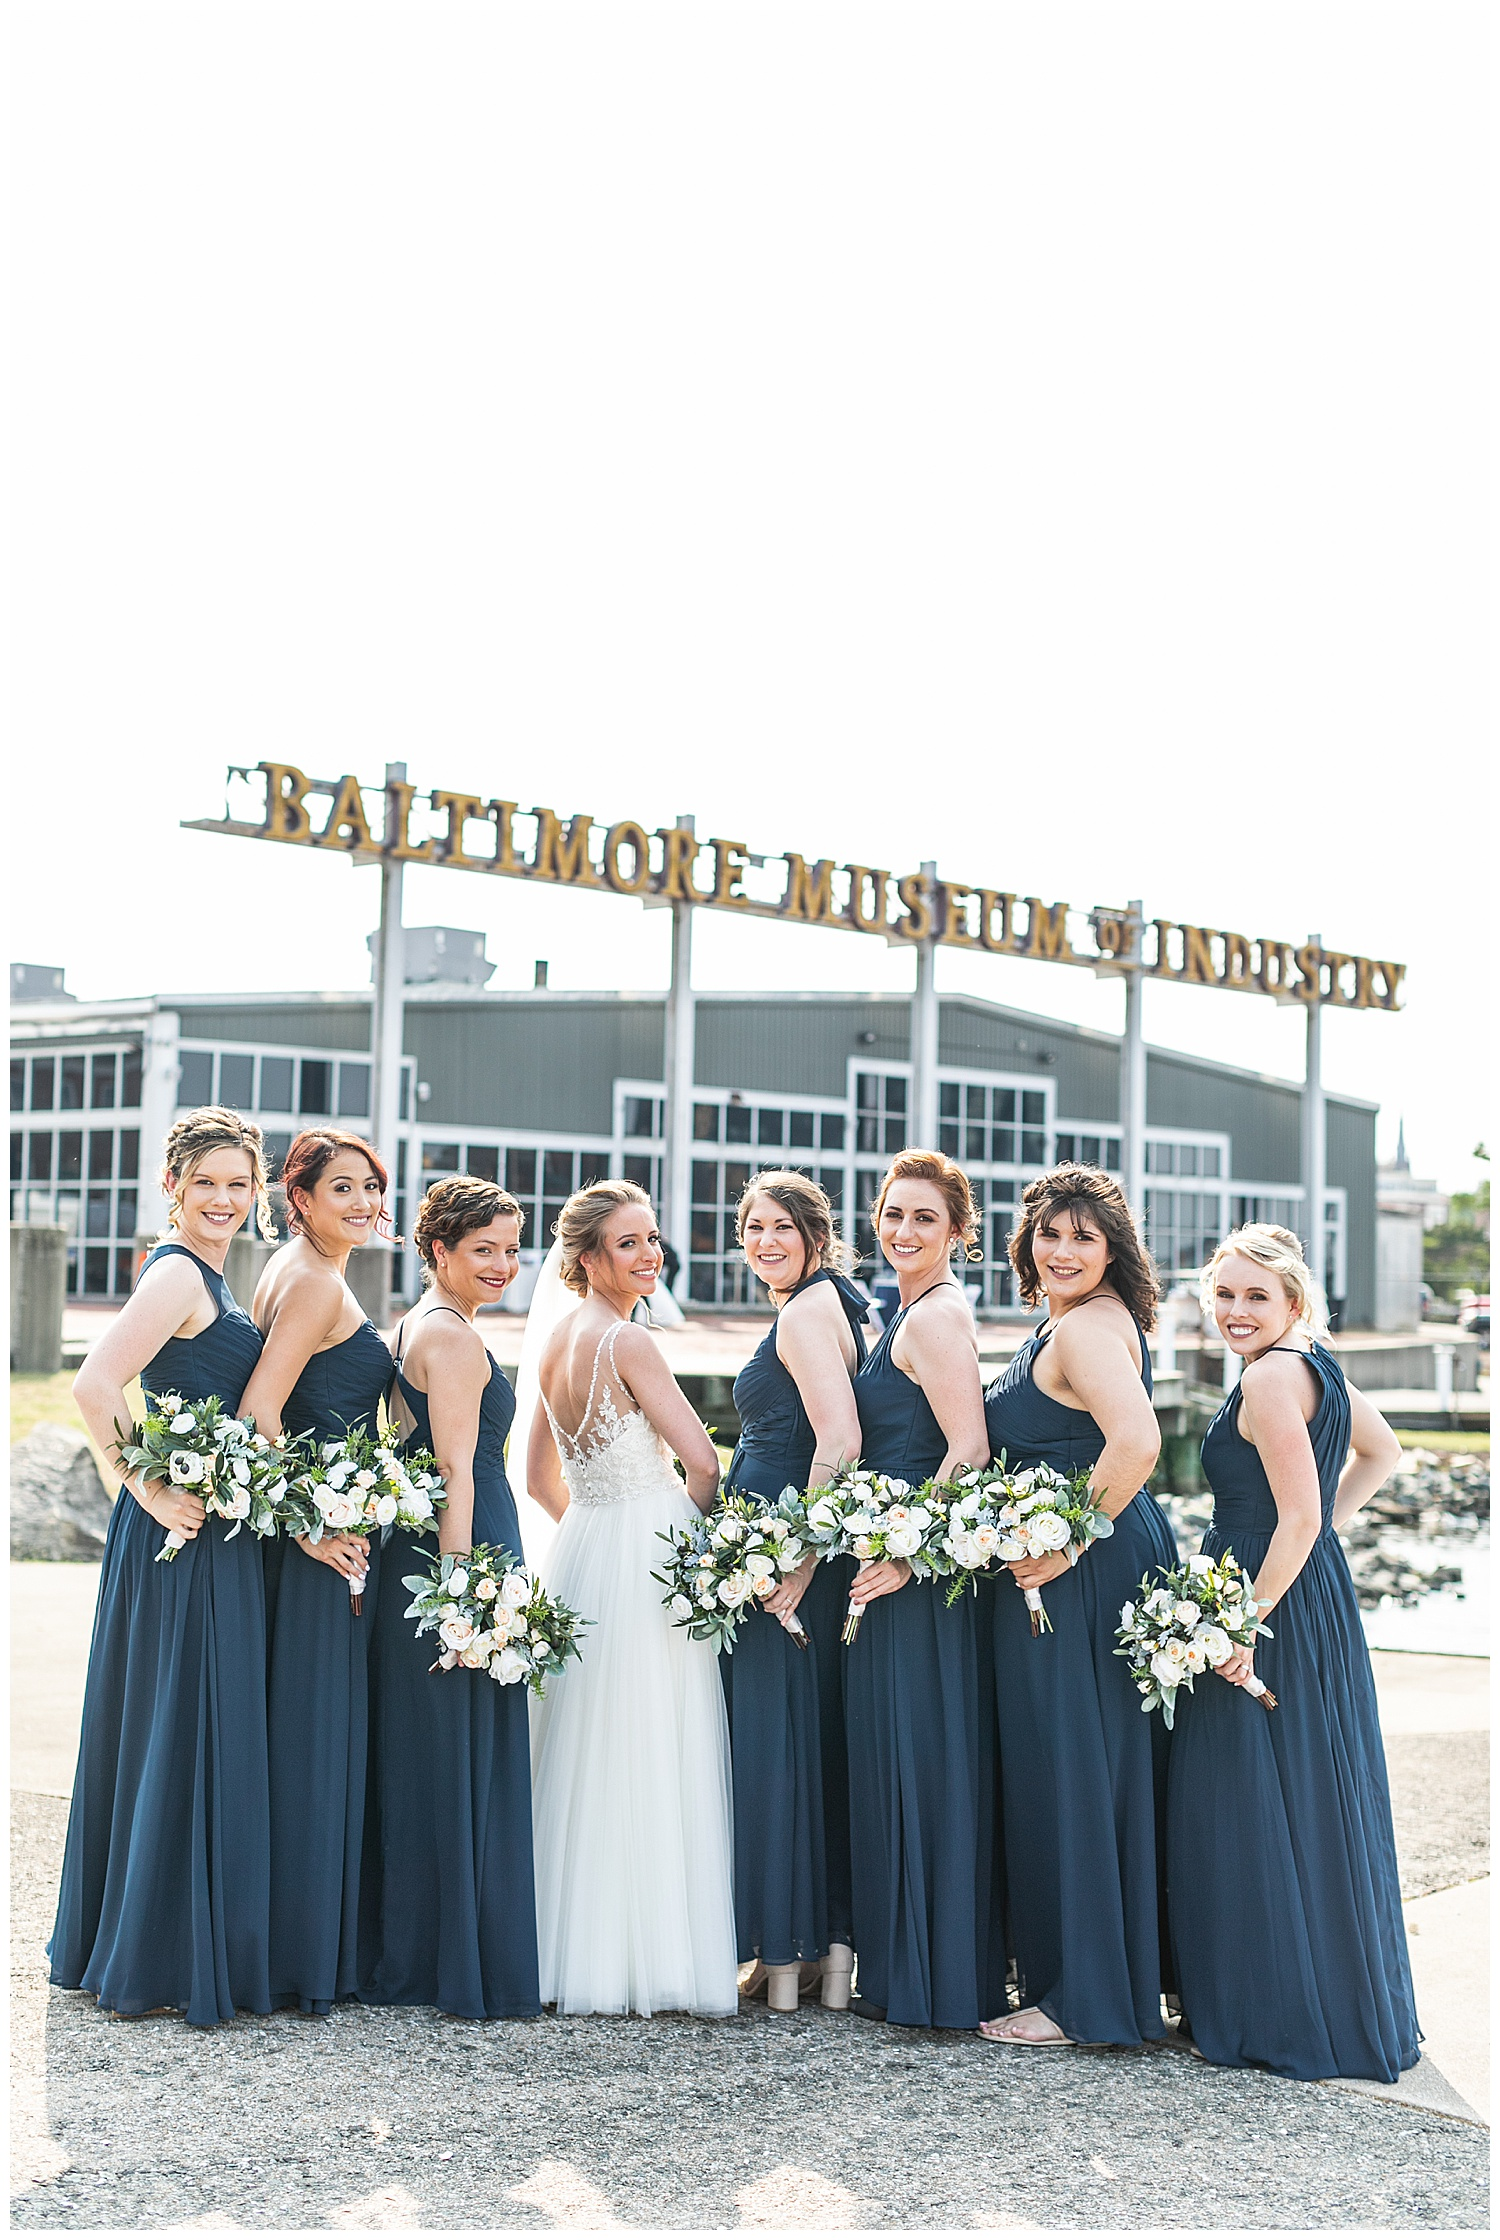 Jenn James Baltimore Museum of Industry Wedding Living Radiant Photography photos_0084.jpg